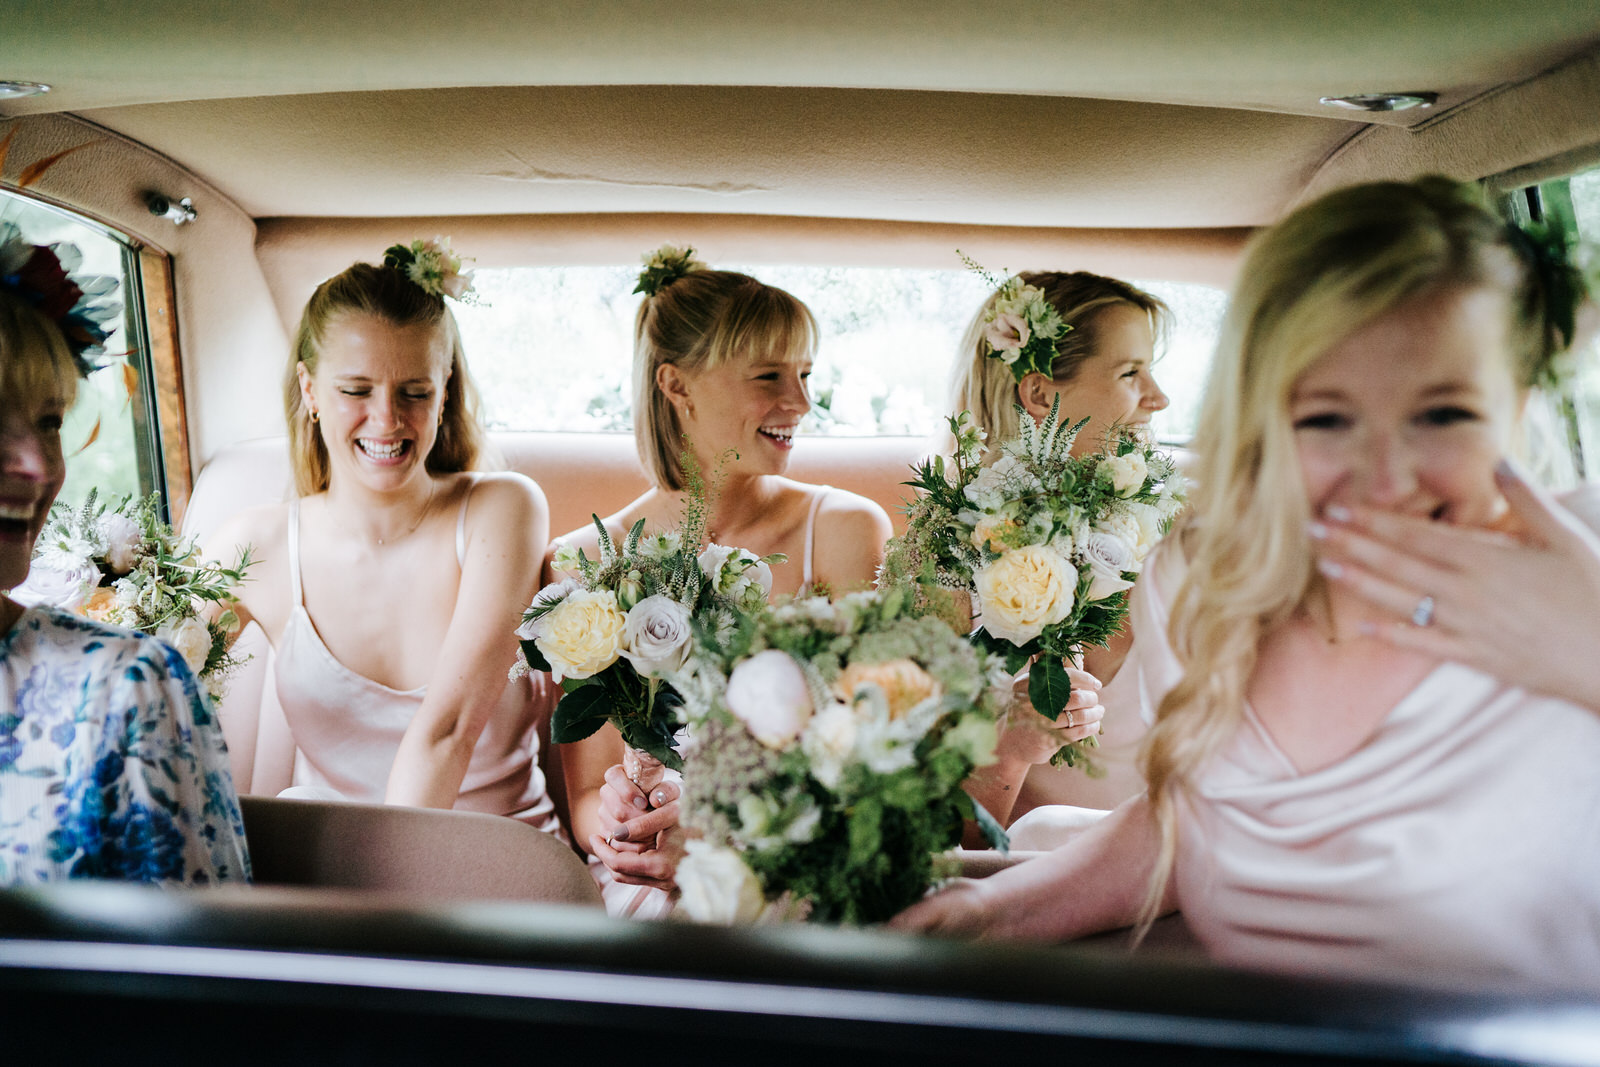 Bridesmaids and mother of the bride sit in the back of the car and smile as they are driven to wedding ceremony